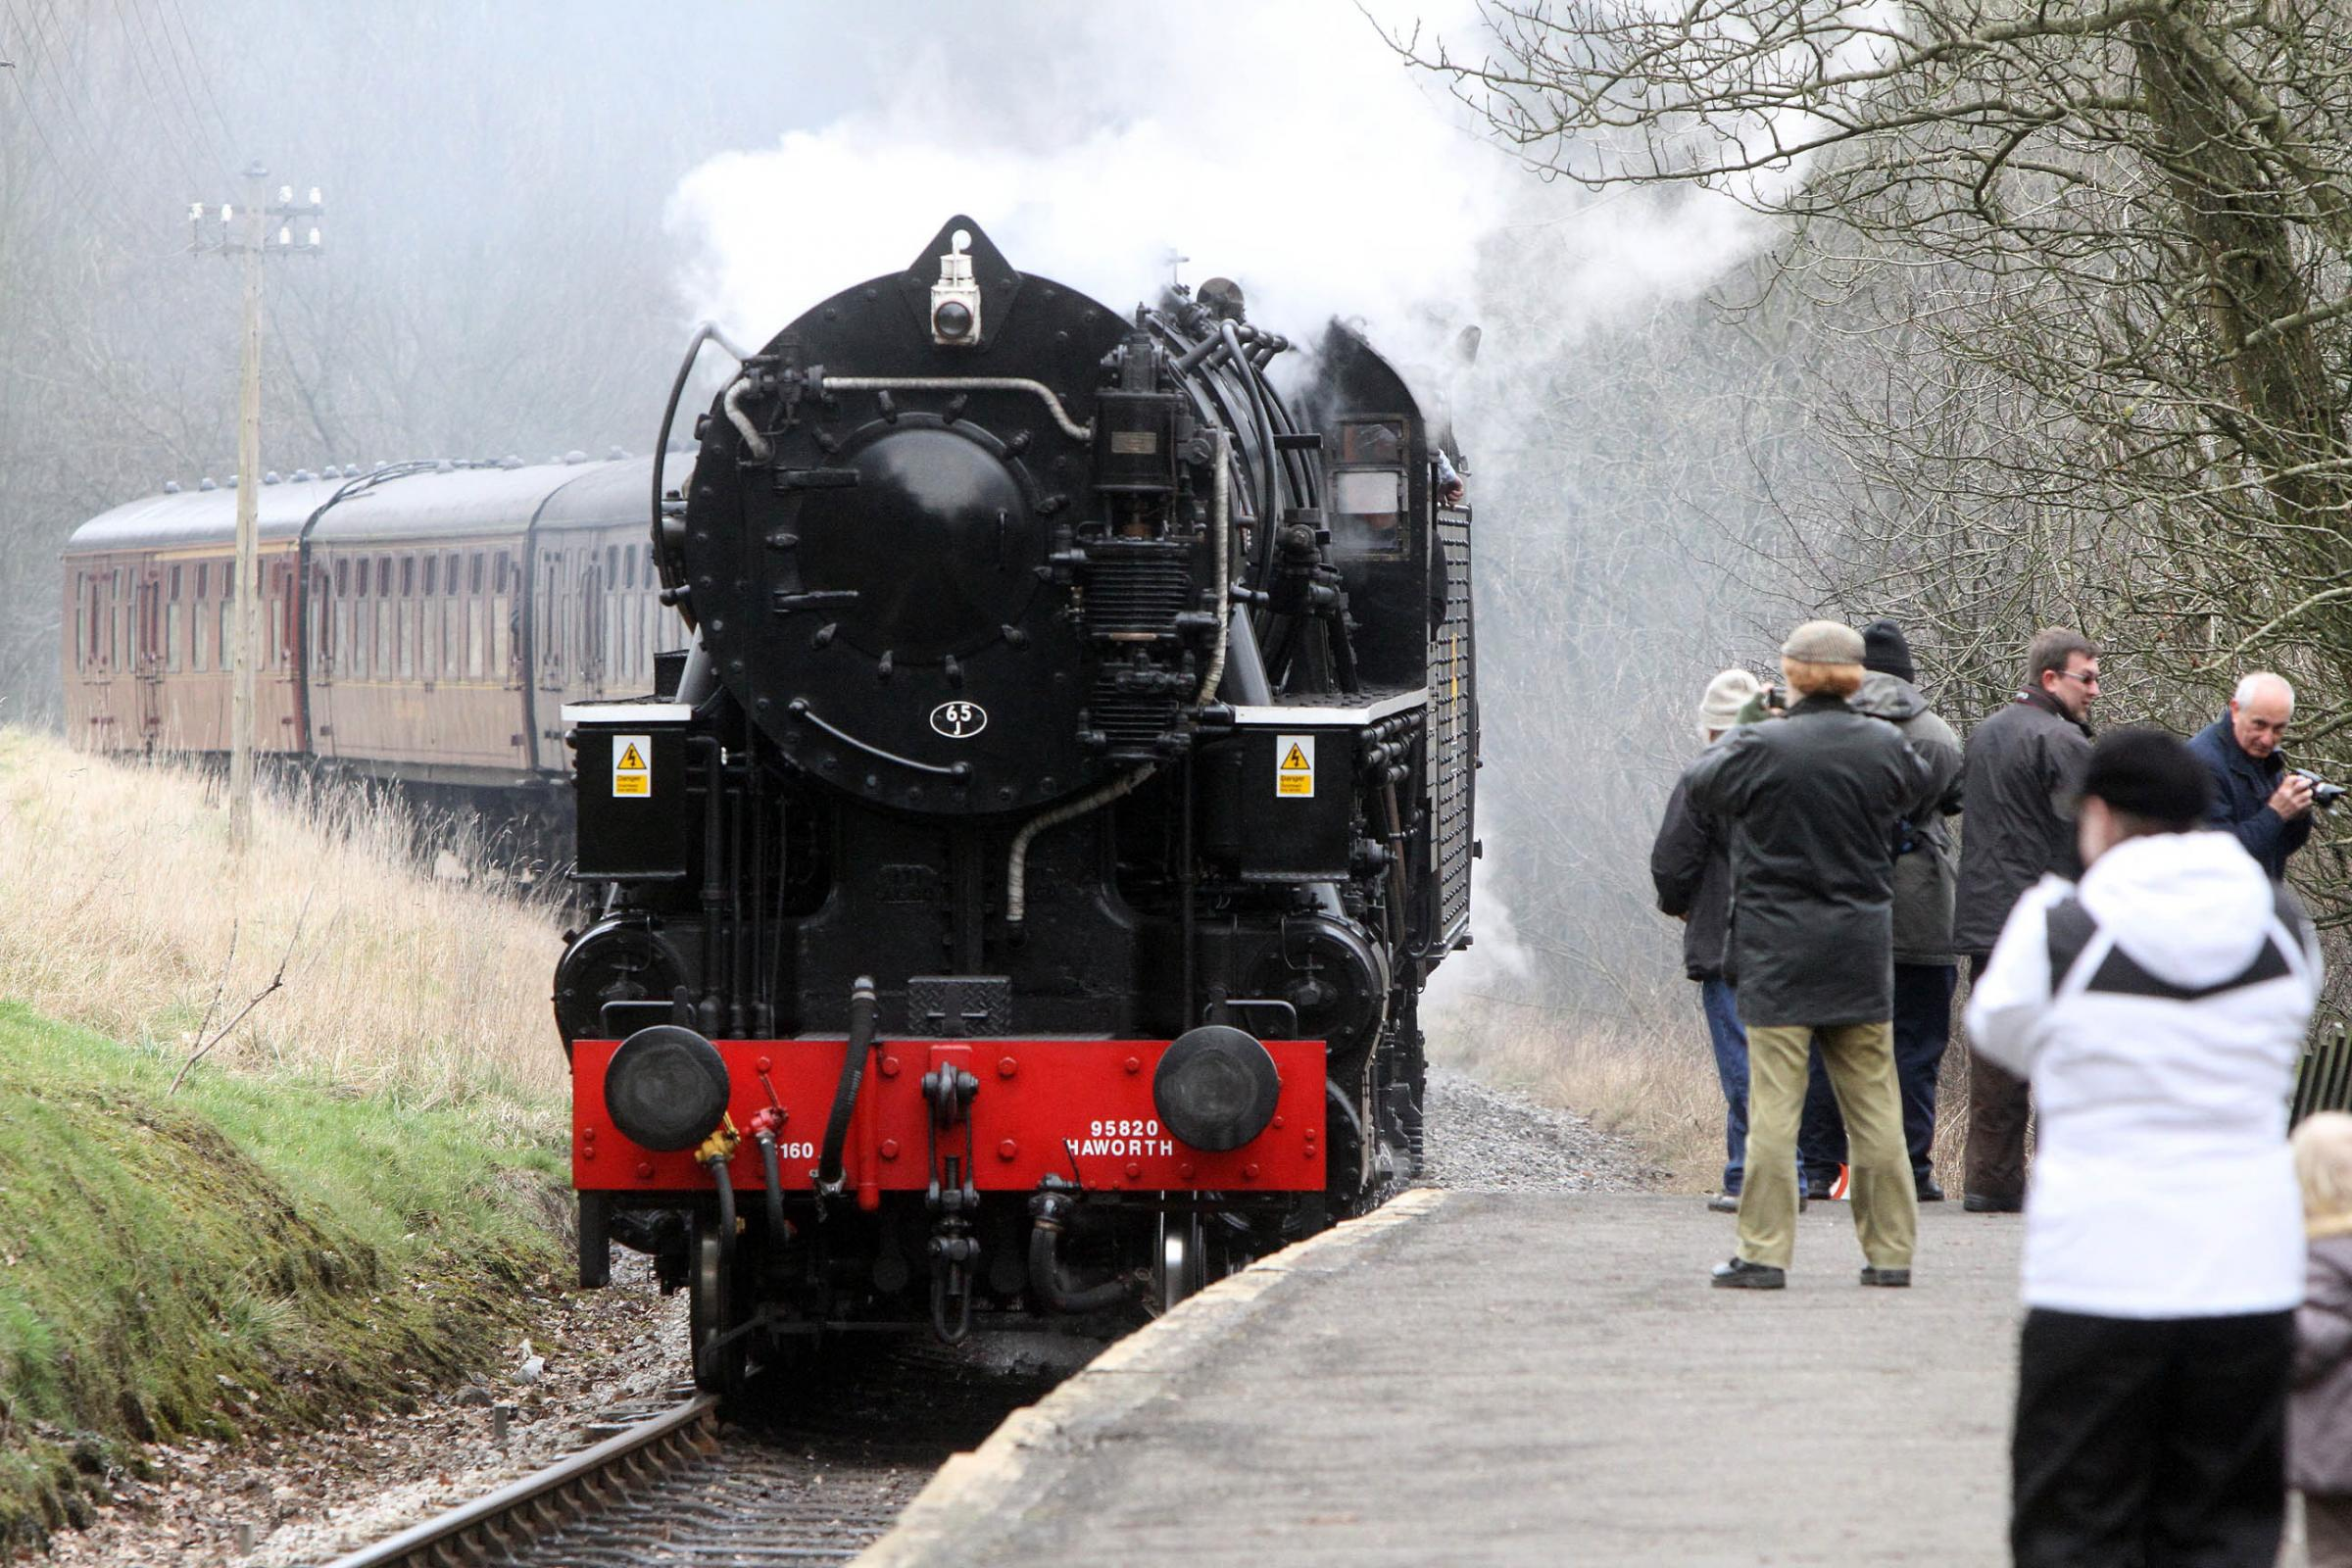 The Keighley & Worth Valley Railway, where filming is taking place for a major production for the BBC